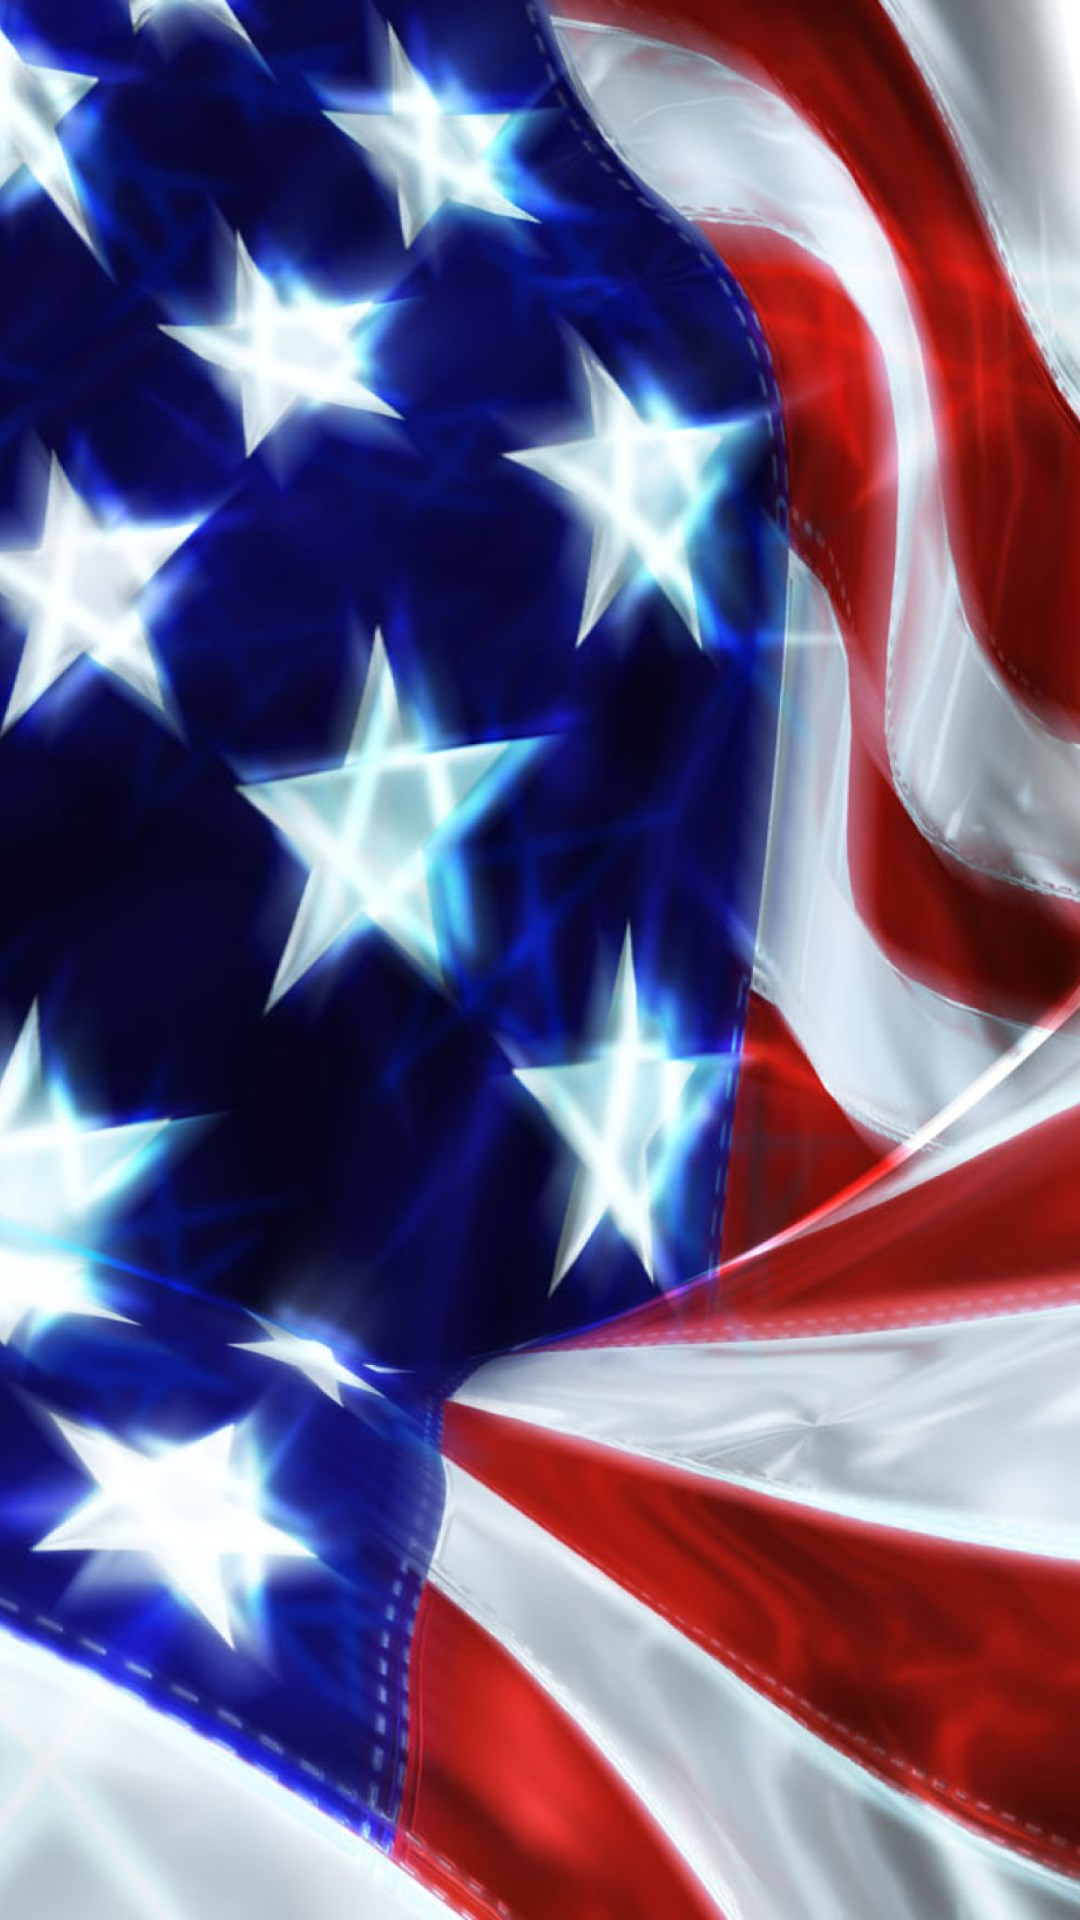 1080-x1920-american-flag-iphone-background-wallpaper-wp360609